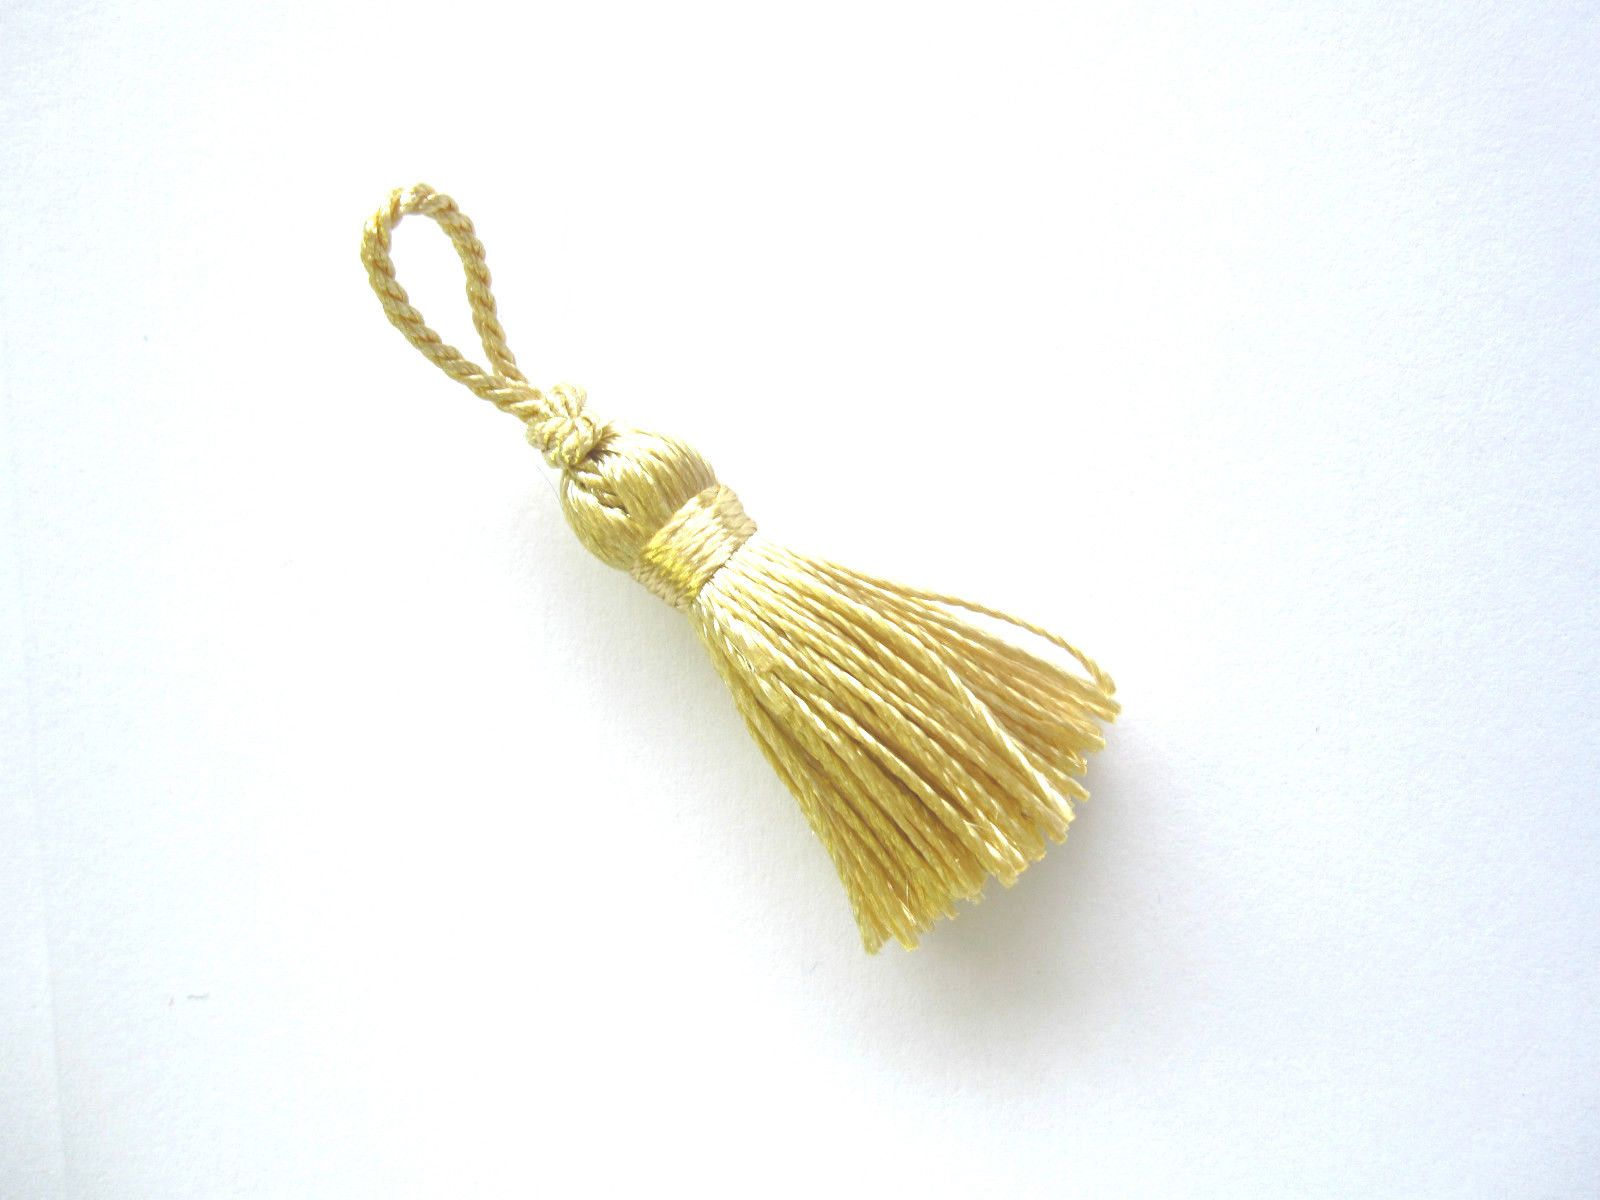 10CM PACK OF 10 SMALL CRAFT DECORATIVE YELLOW GOLD TASSELS